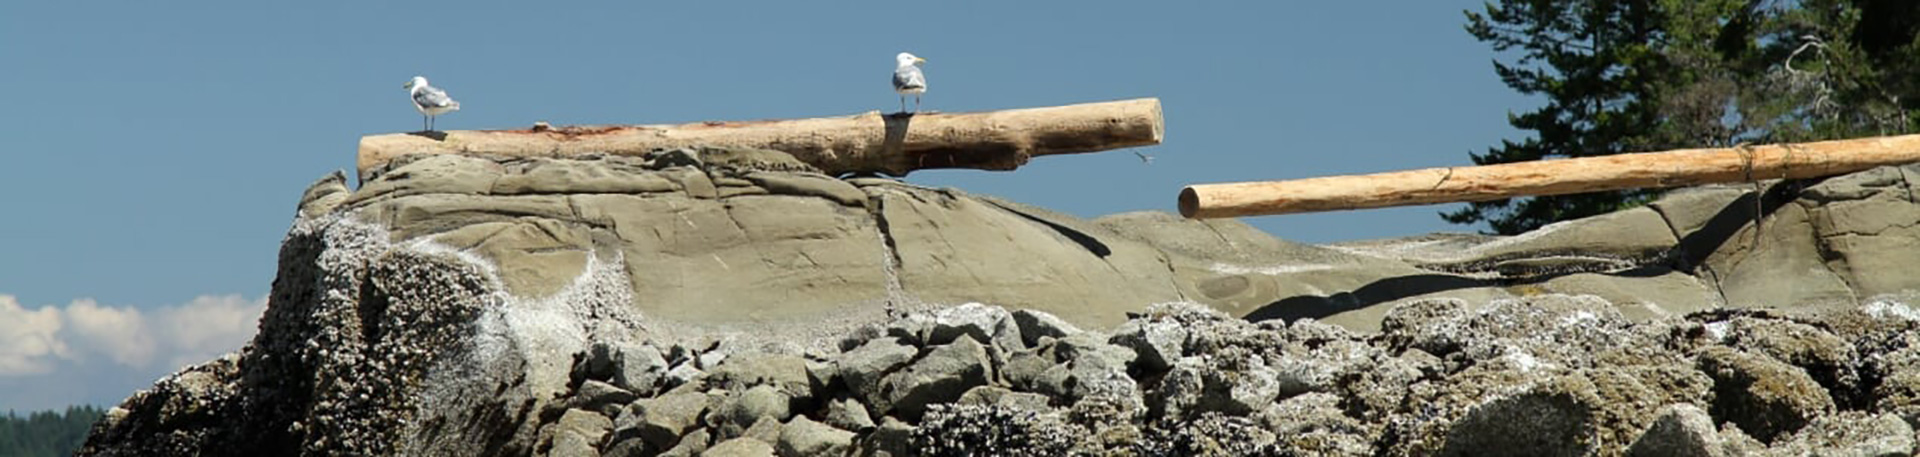 Seagulls on a log at the edge of a rocky beach